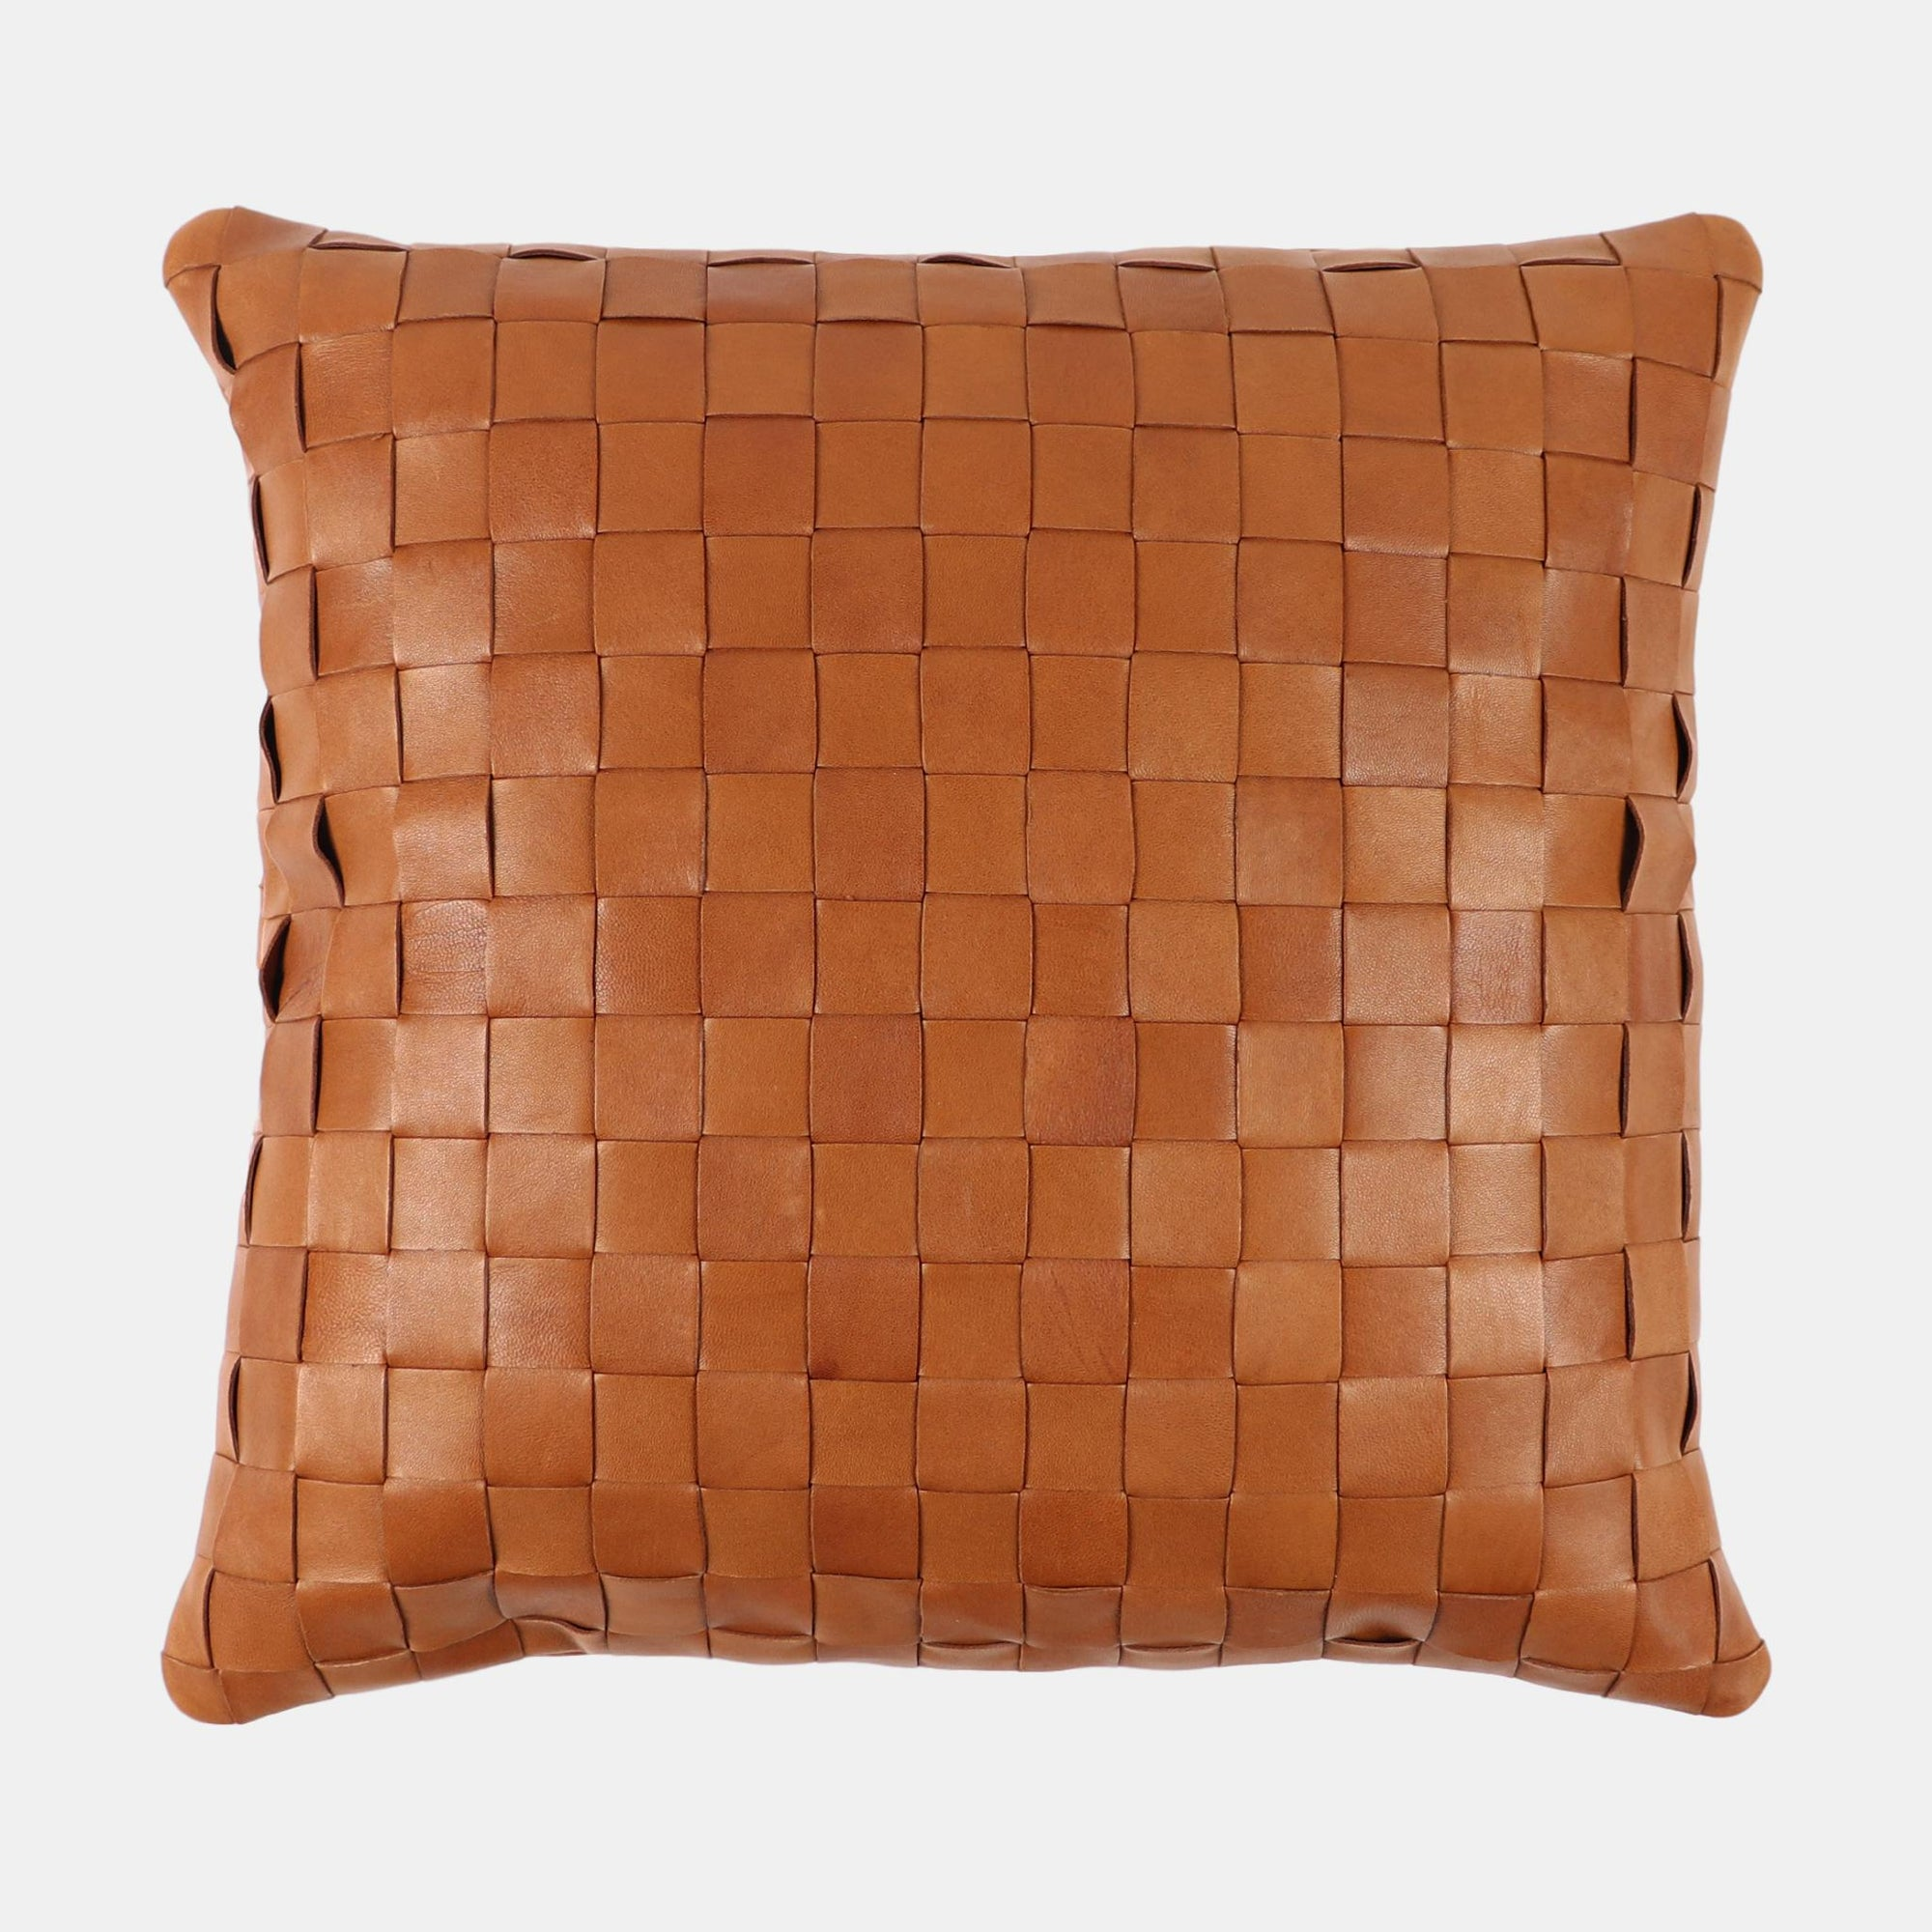 MALIBU Leather Pillow Cover